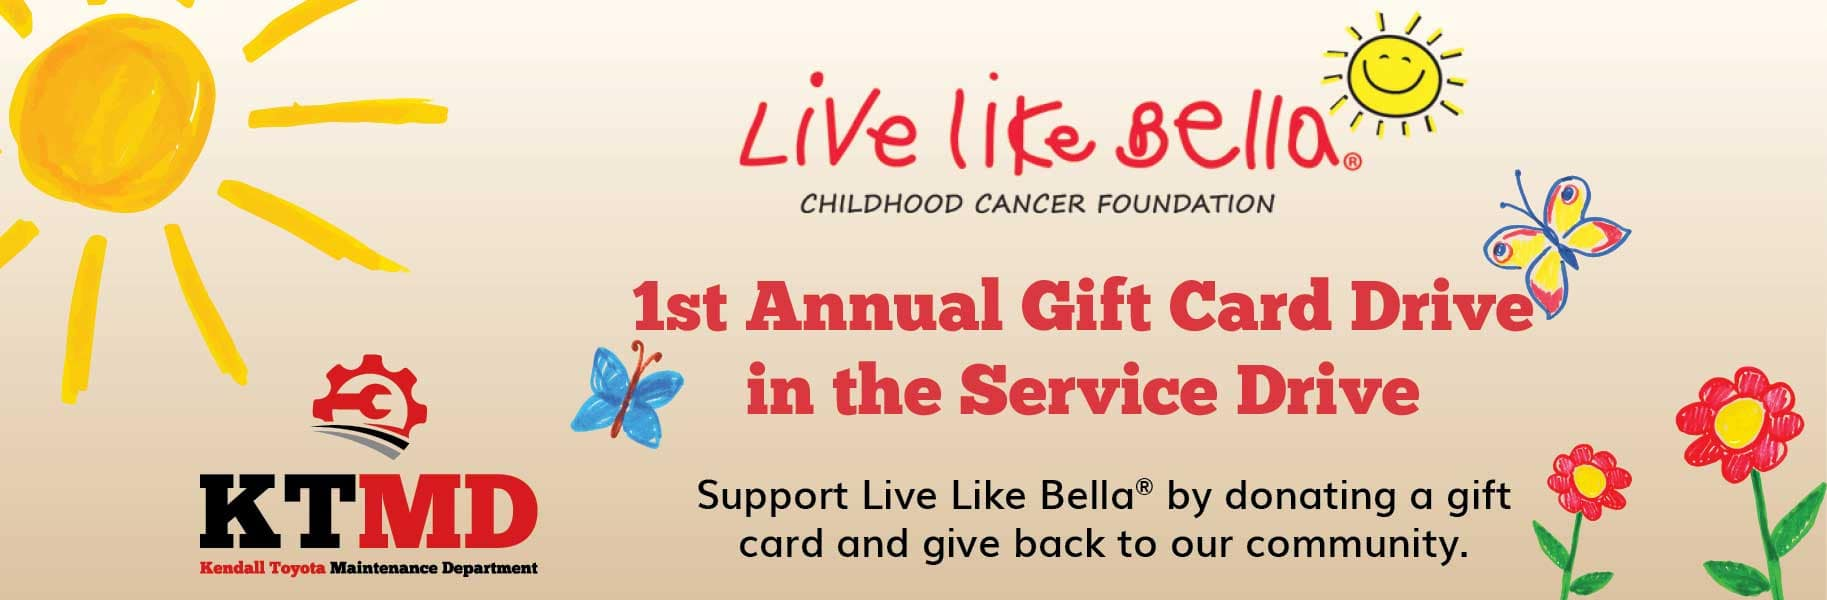 Live Like Bella Gift Card Drive